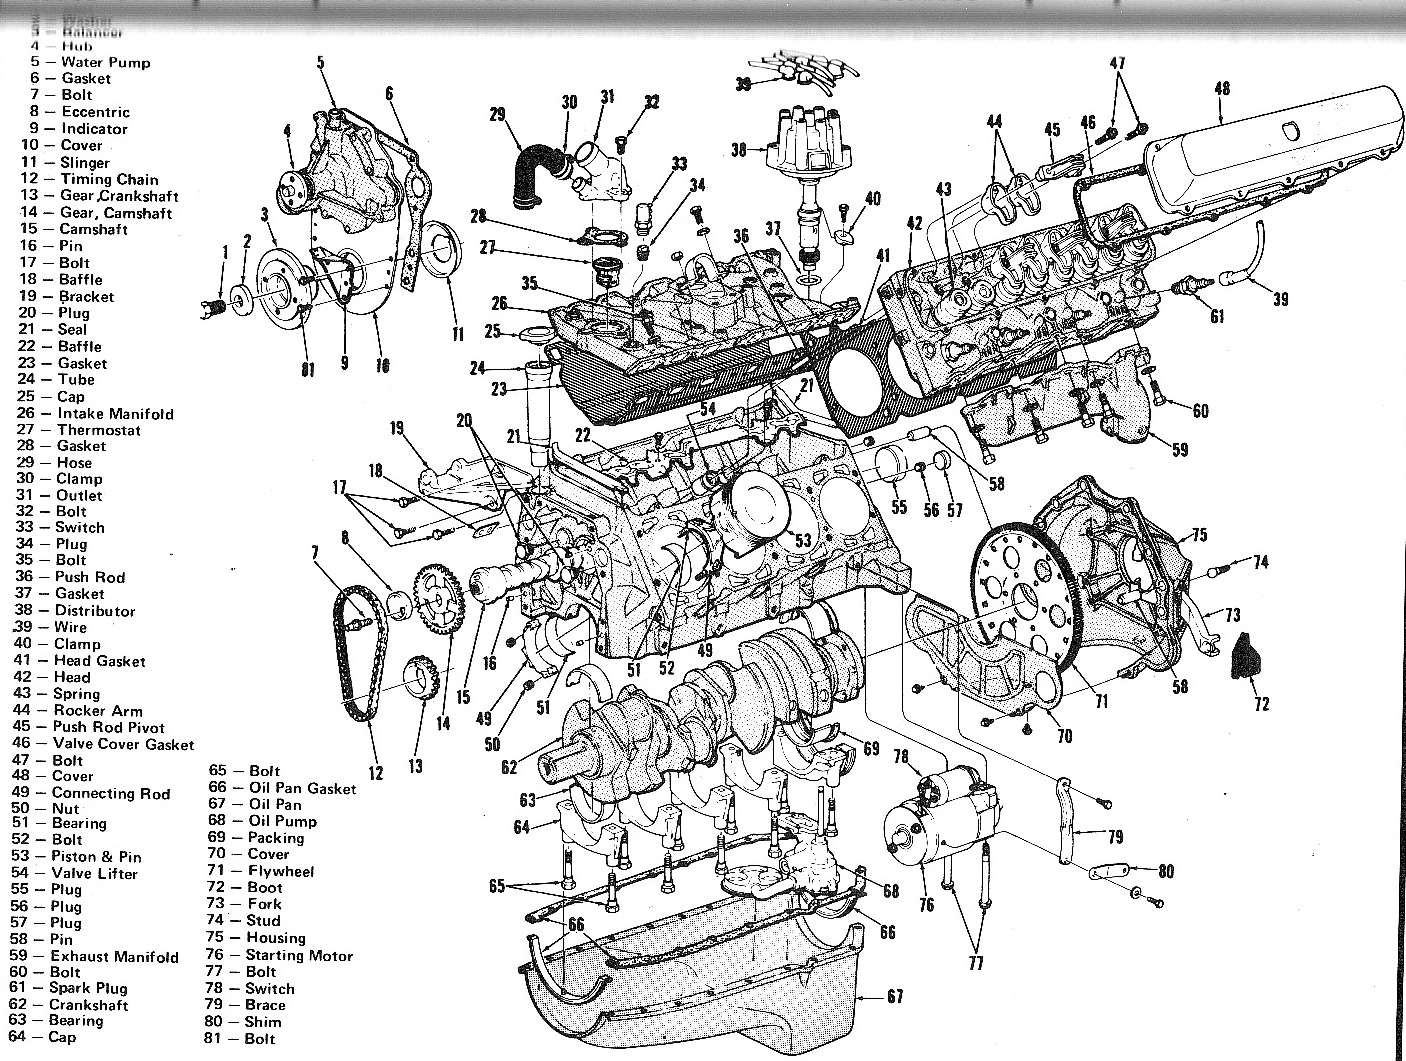 1978 Chevy V8 Engine Diagram Cityvoice Org Uk